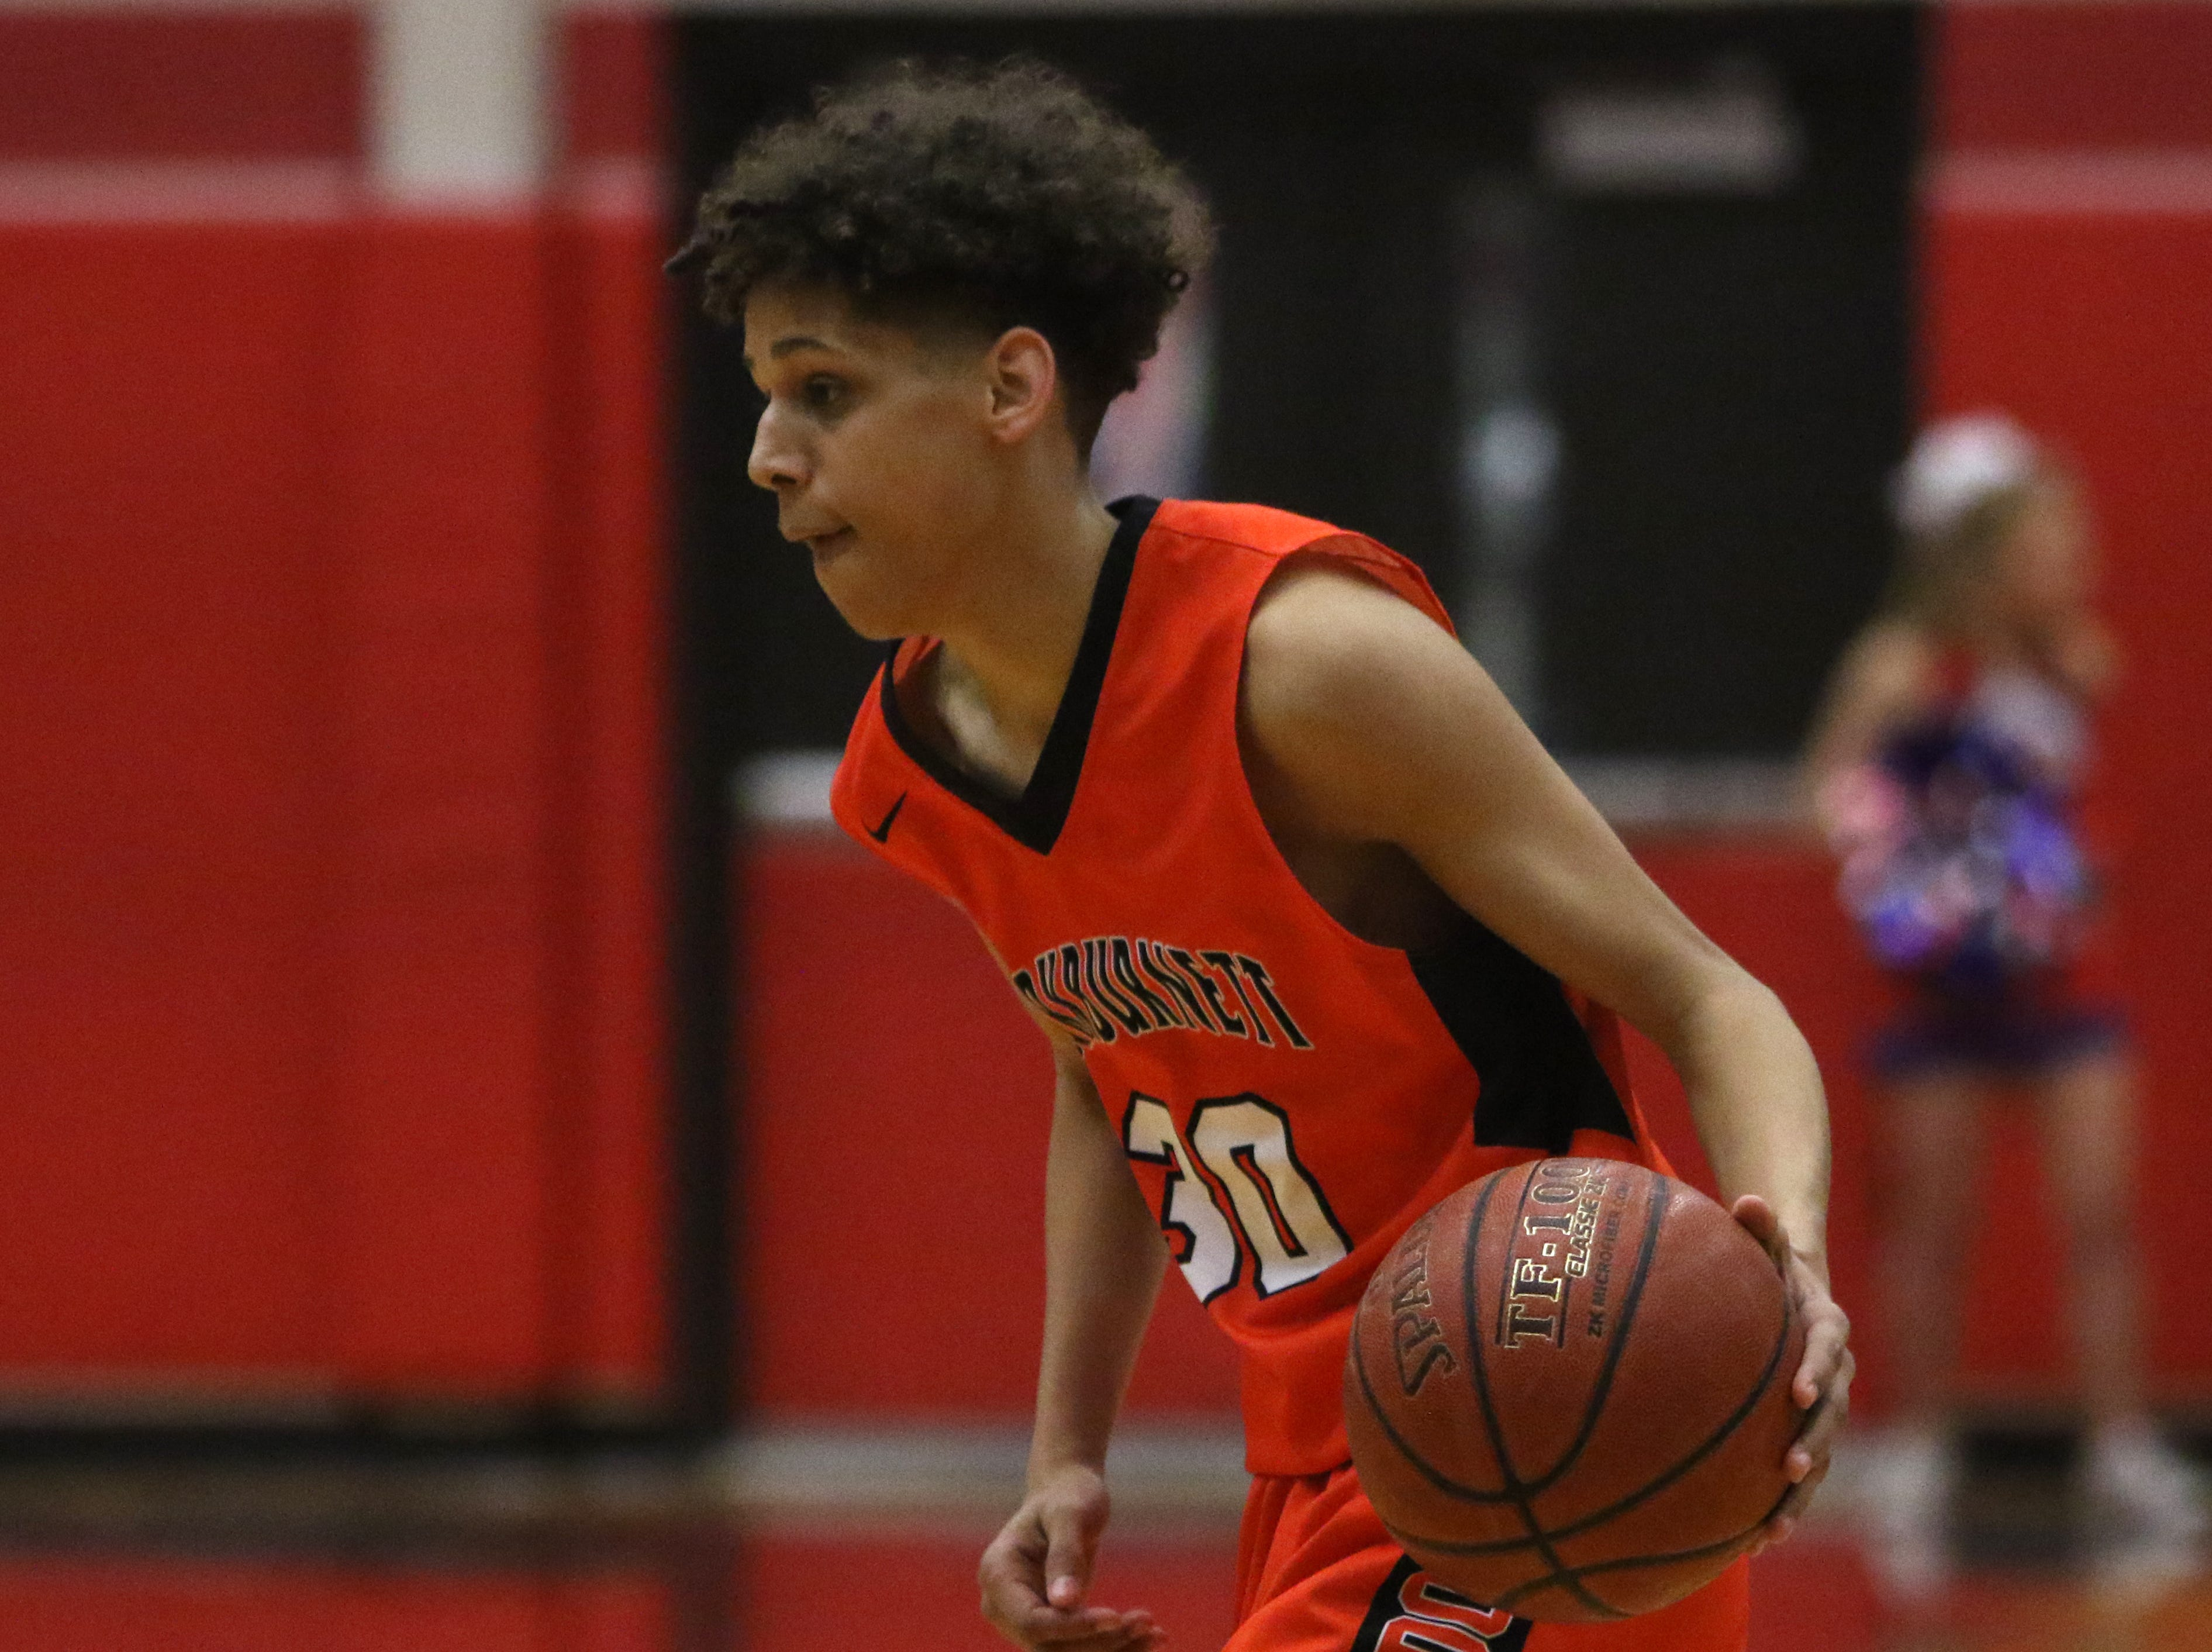 Burkburnett's Zach Prejean dribbles in the game against Graham Friday, Feb. 8, 2019, in Graham. The Steers defeated the Bulldogs 75-70.